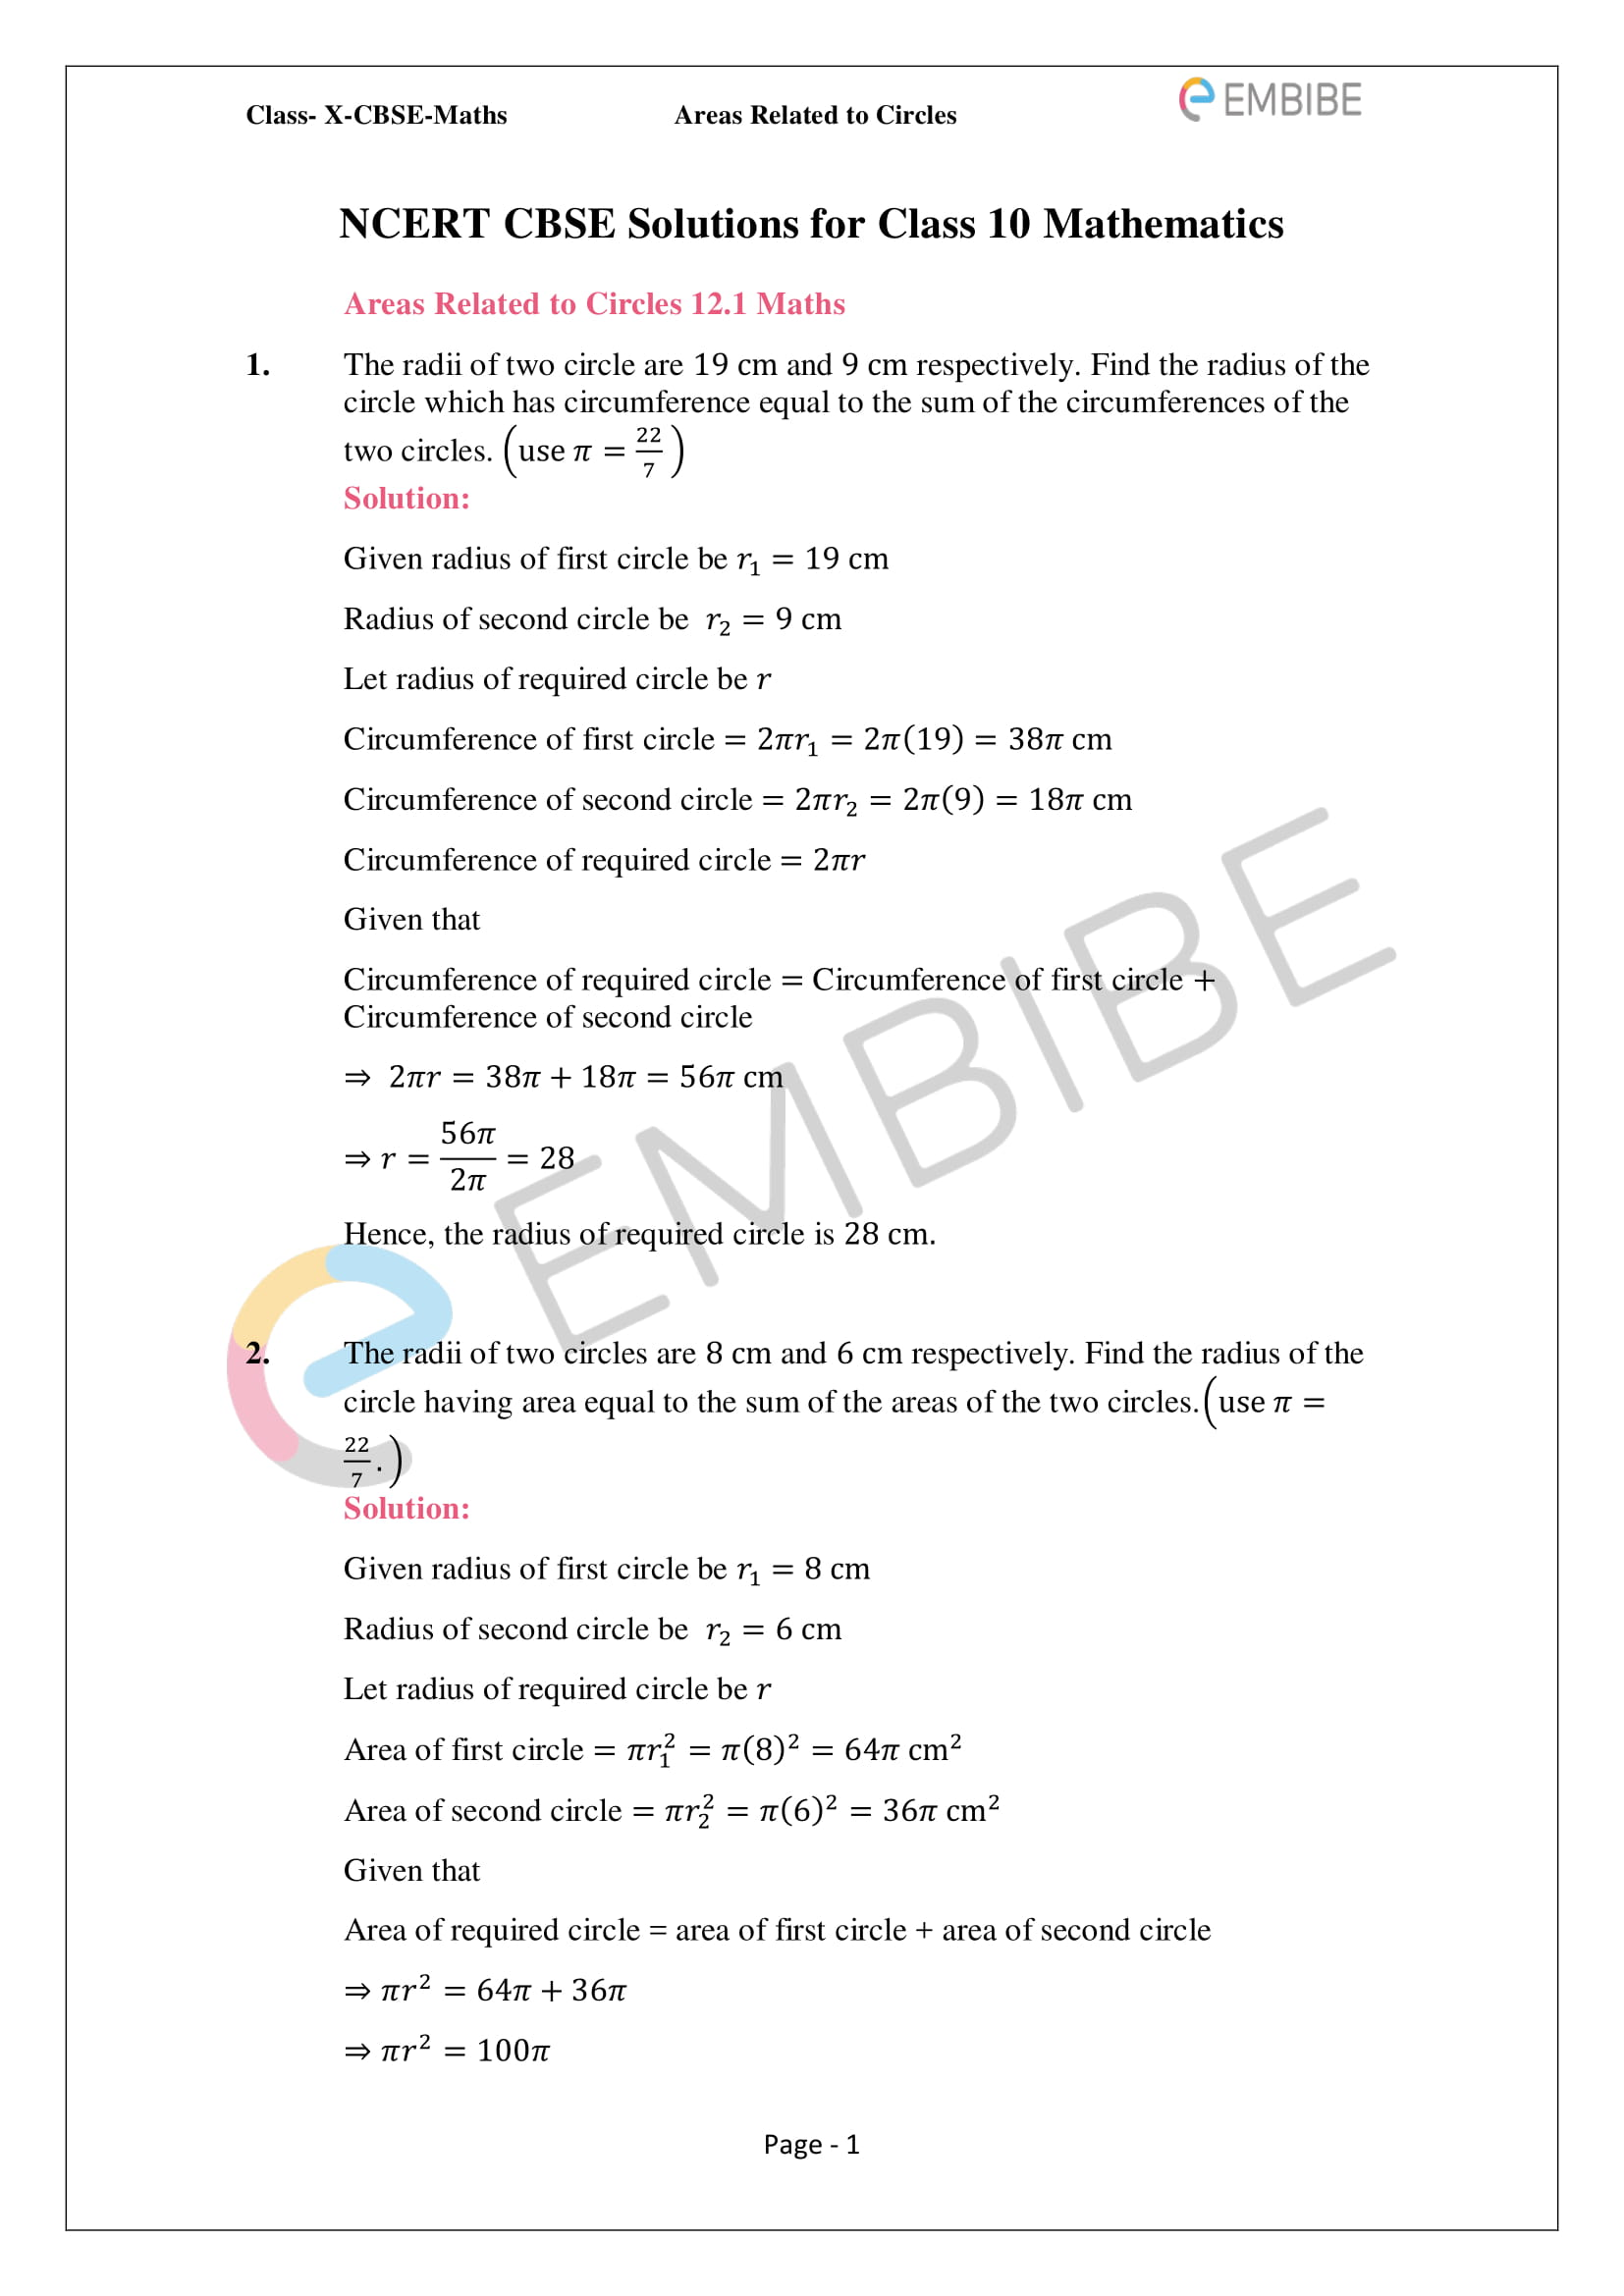 CBSE NCERT Solutions For Class 10 Maths Chapter 12 - Areas Related To Circle - 1